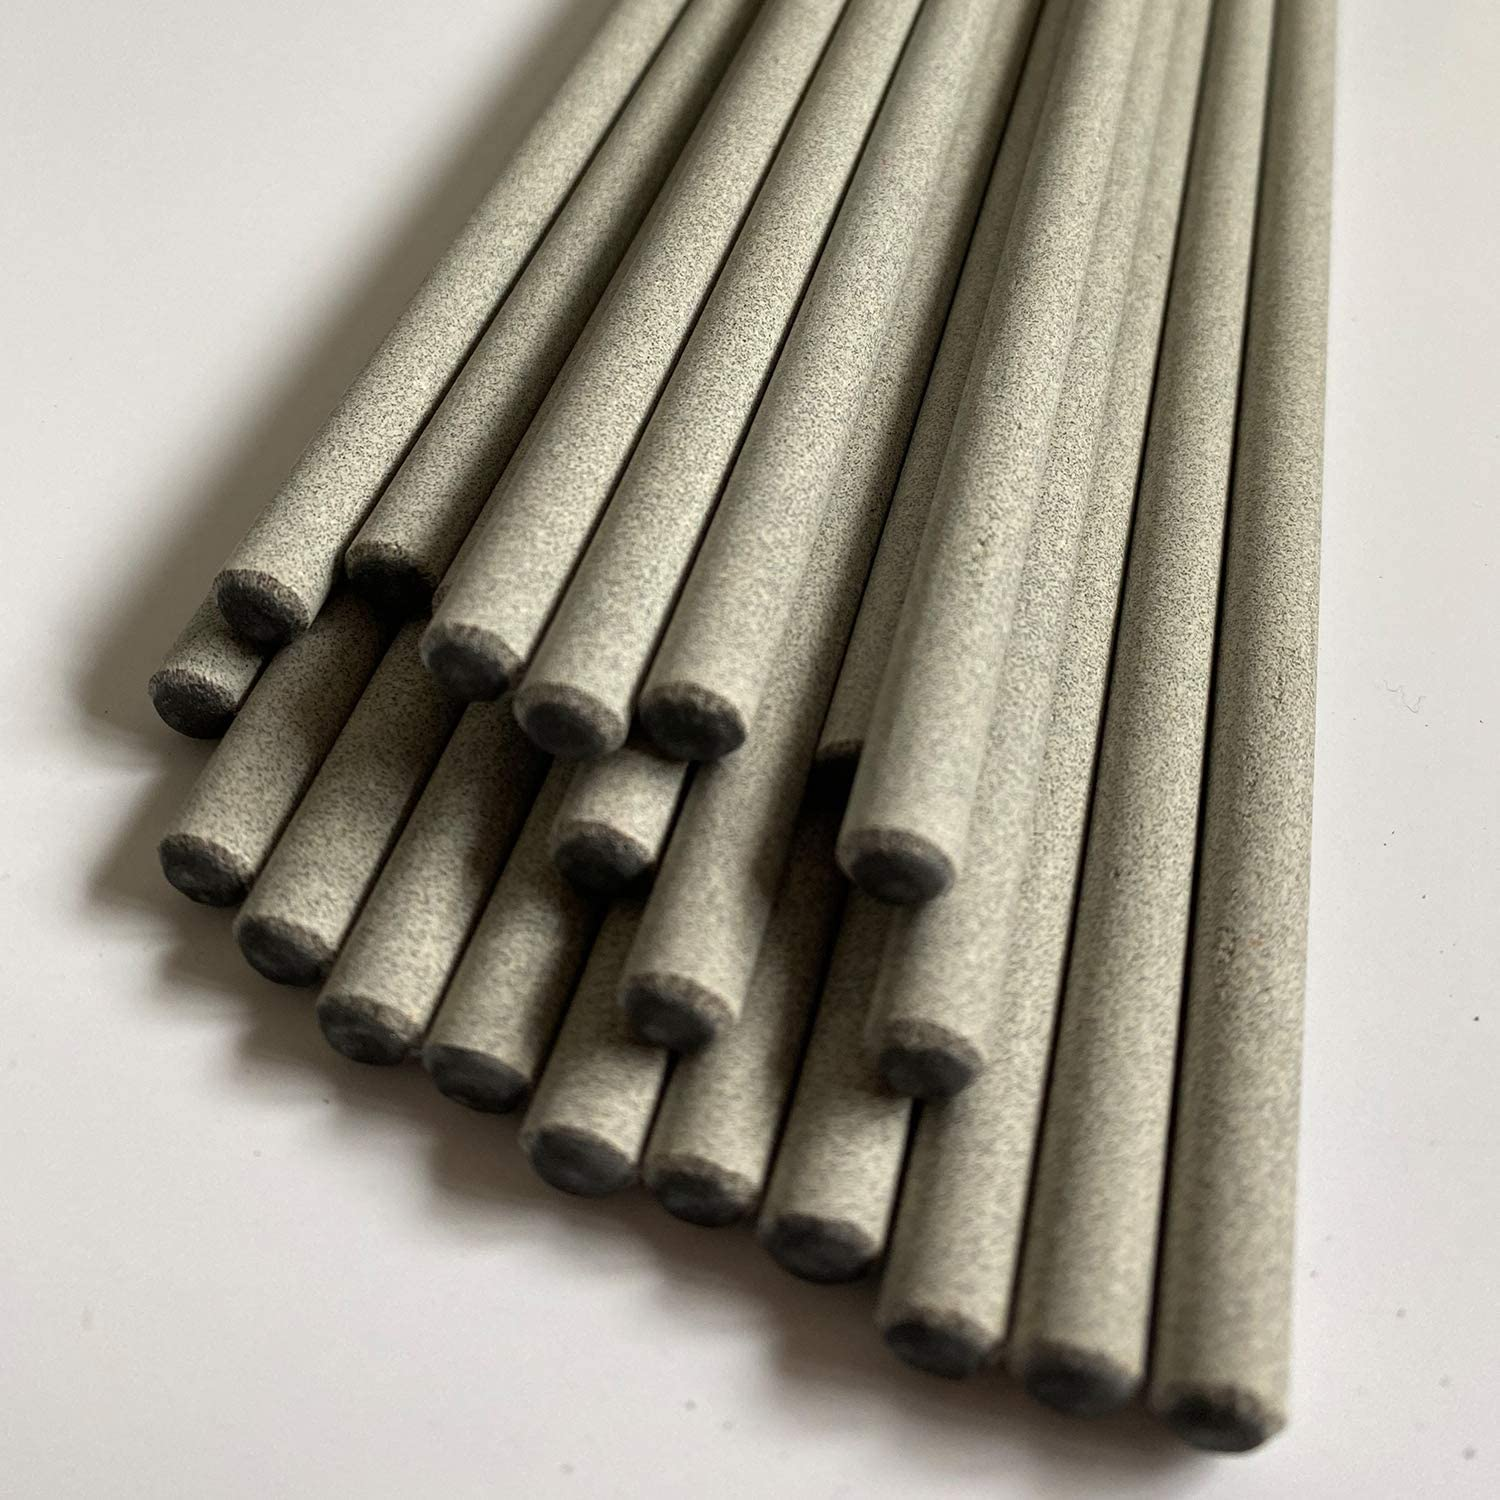 10 x Rutile-cellulosic Welding Electrodes Rods 2.0mm 2.5mm 3.2mm 4.0mm 5.0mm for Mild Steel All positional General Purpose Type E6013